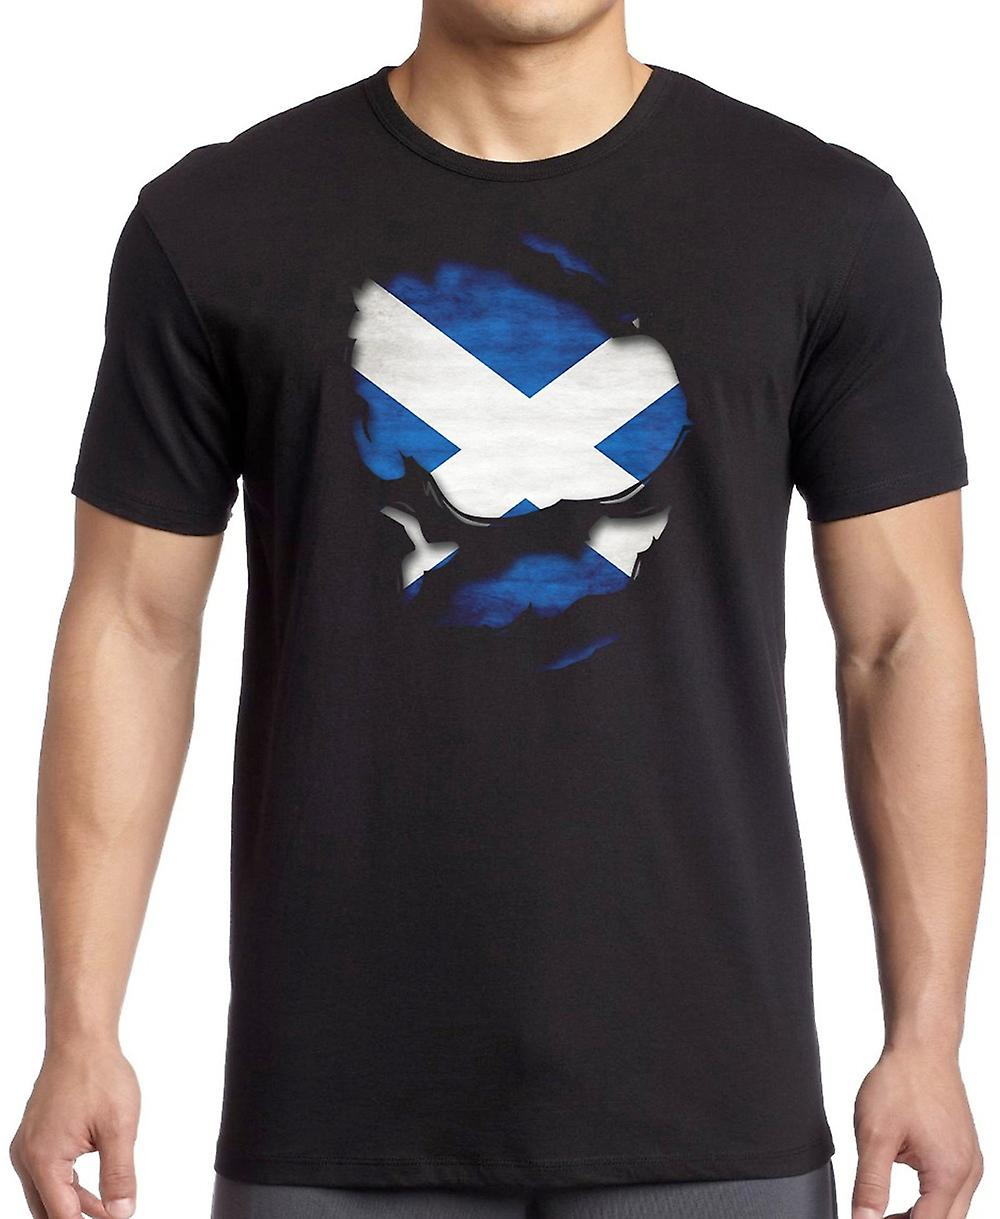 Ecosse Scottish Saltire Ripped effet en vertu shirt T-shirt